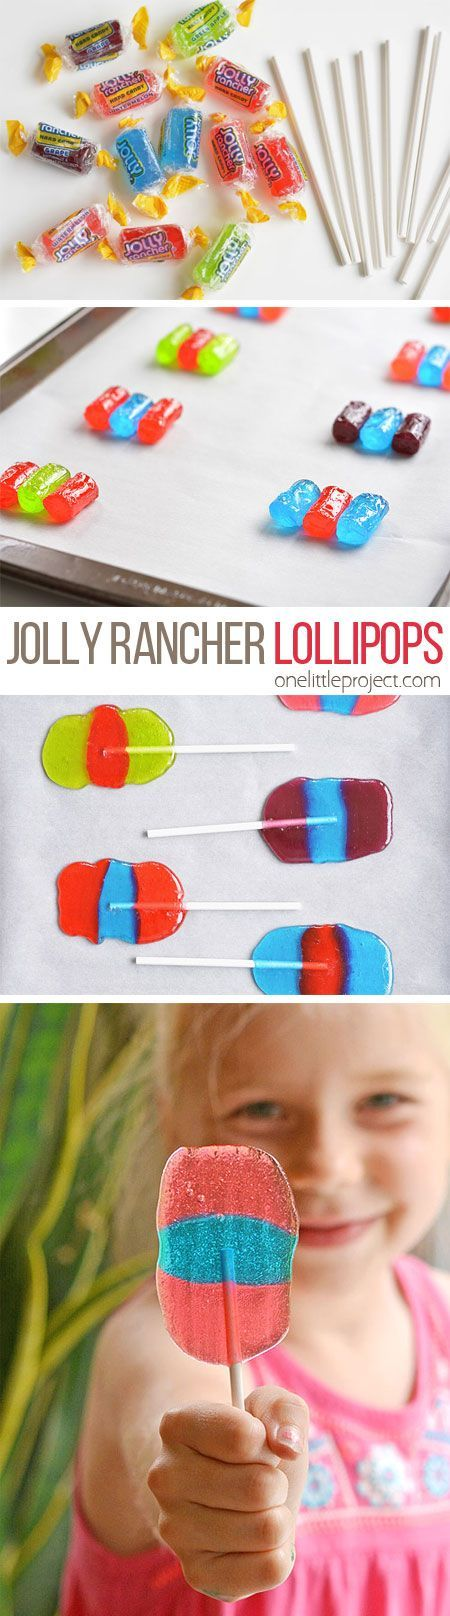 These Jolly Rancher lollipops are SO EASY to make and they are so fun! Such a great party favour idea or even just a fun activity for a Sunday afternoon!